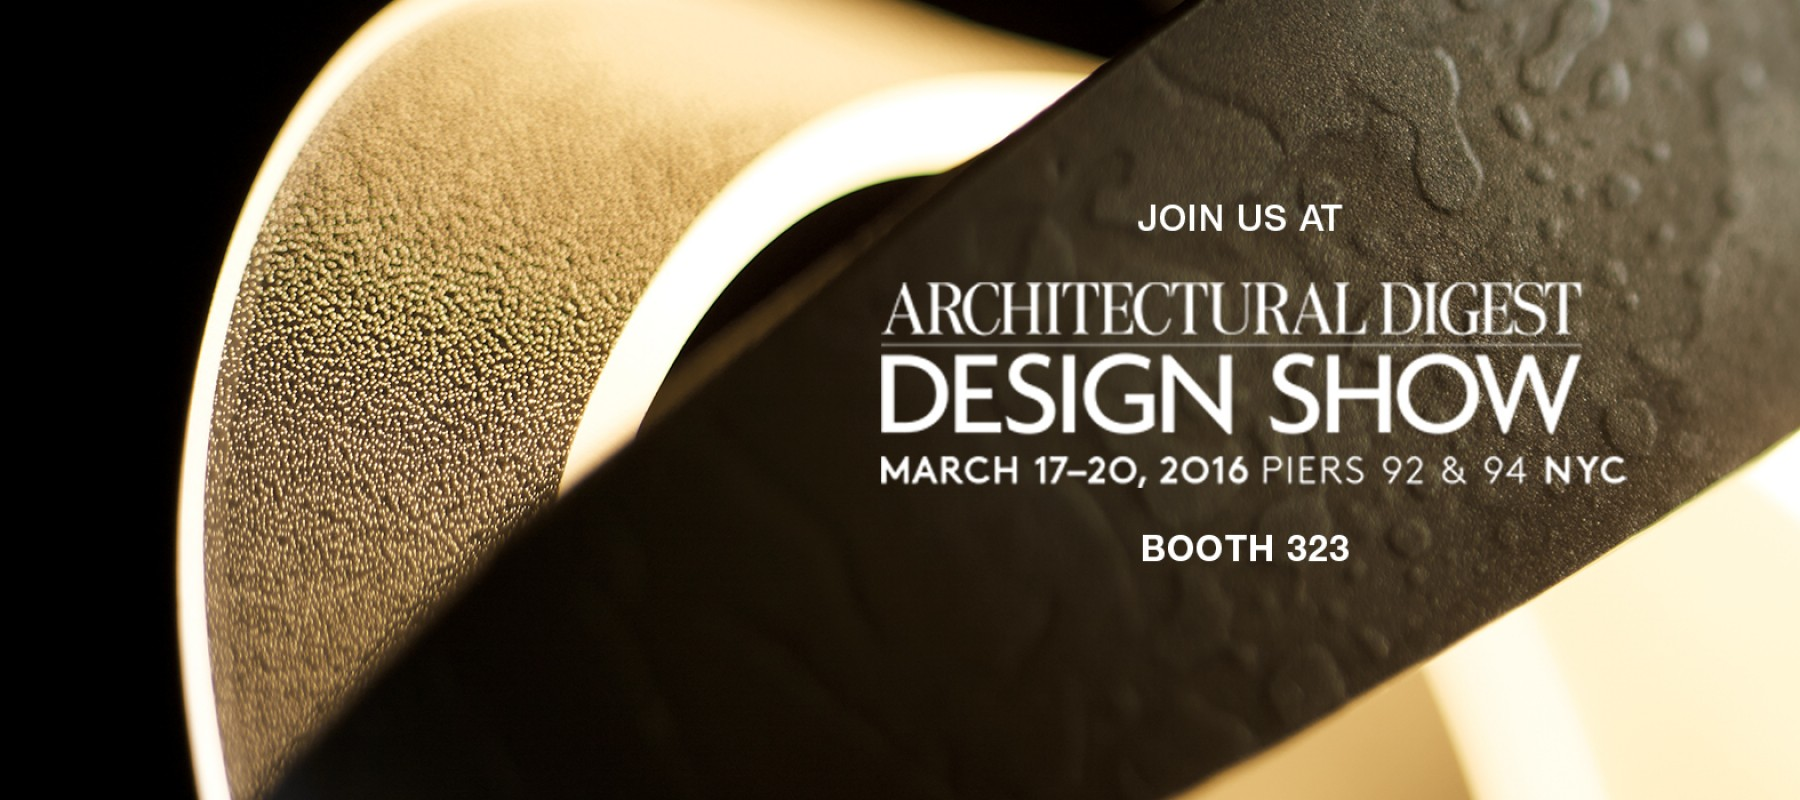 Join us at Architectural Digest Design Show March 11th through the 20th at Piers 92 and 94 in NYC